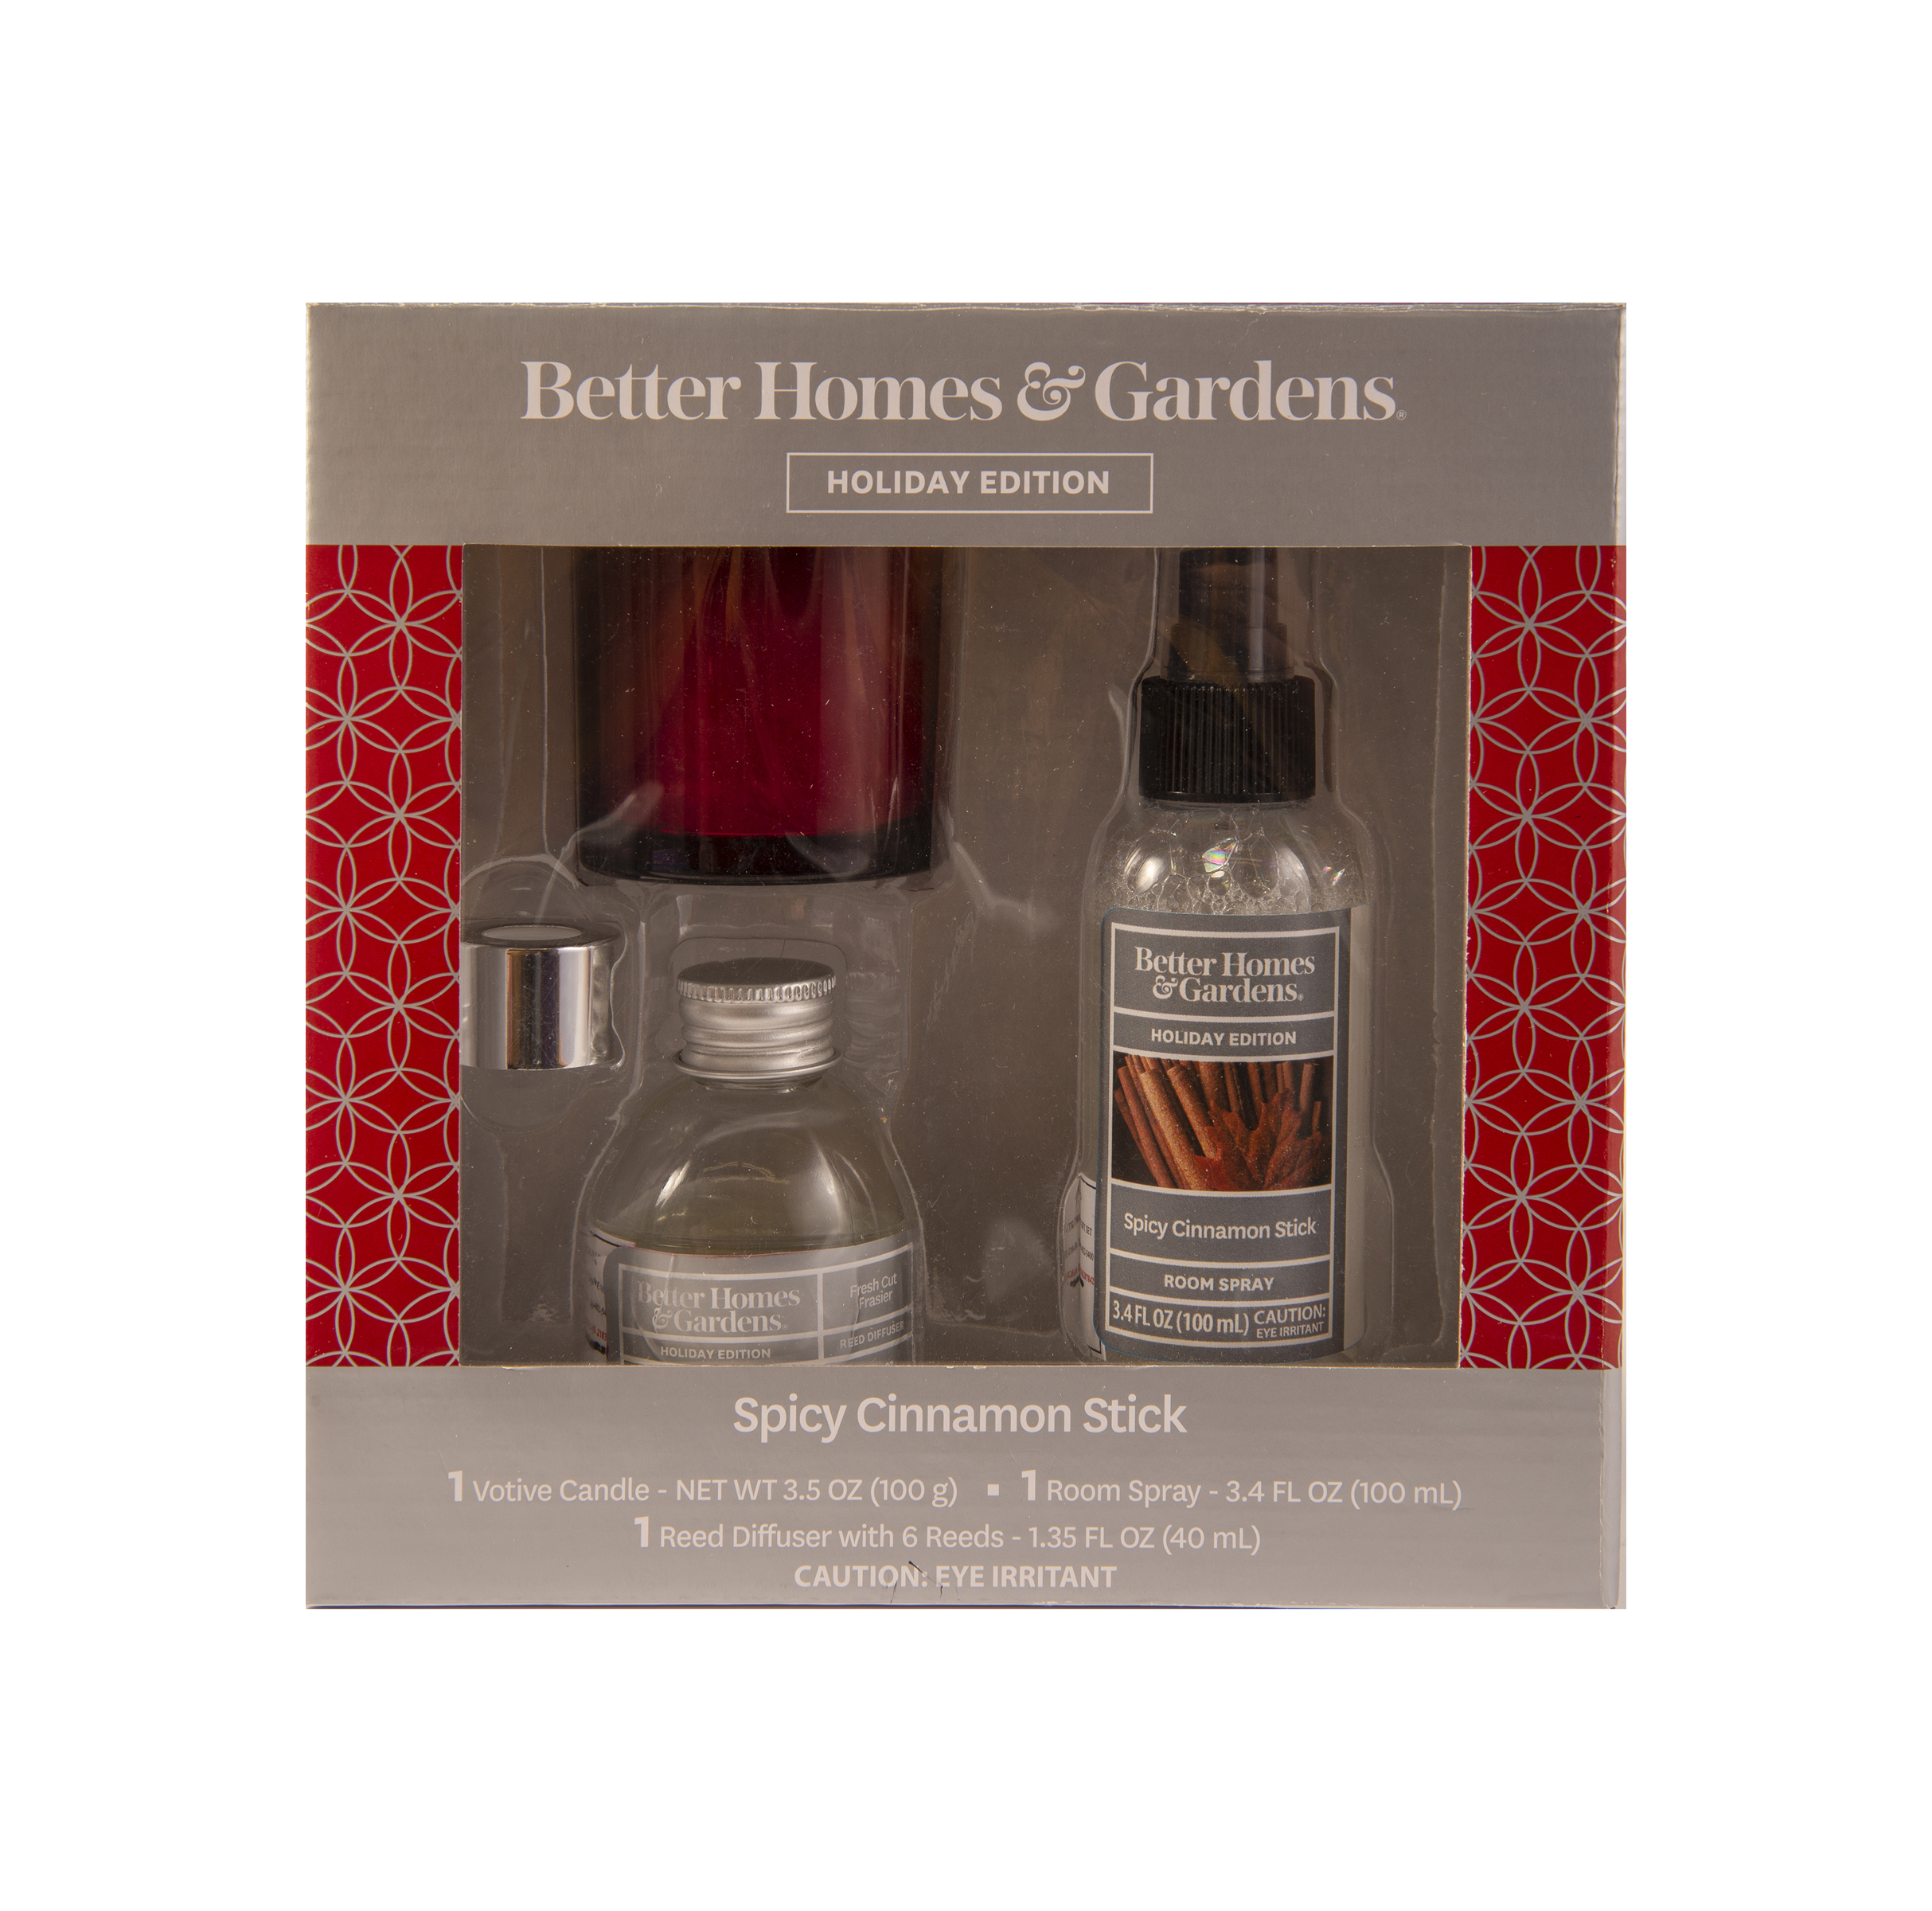 Better Homes & Gardens 3 Piece Spicy Cinnamon Stick Home Fragrance Gift Set